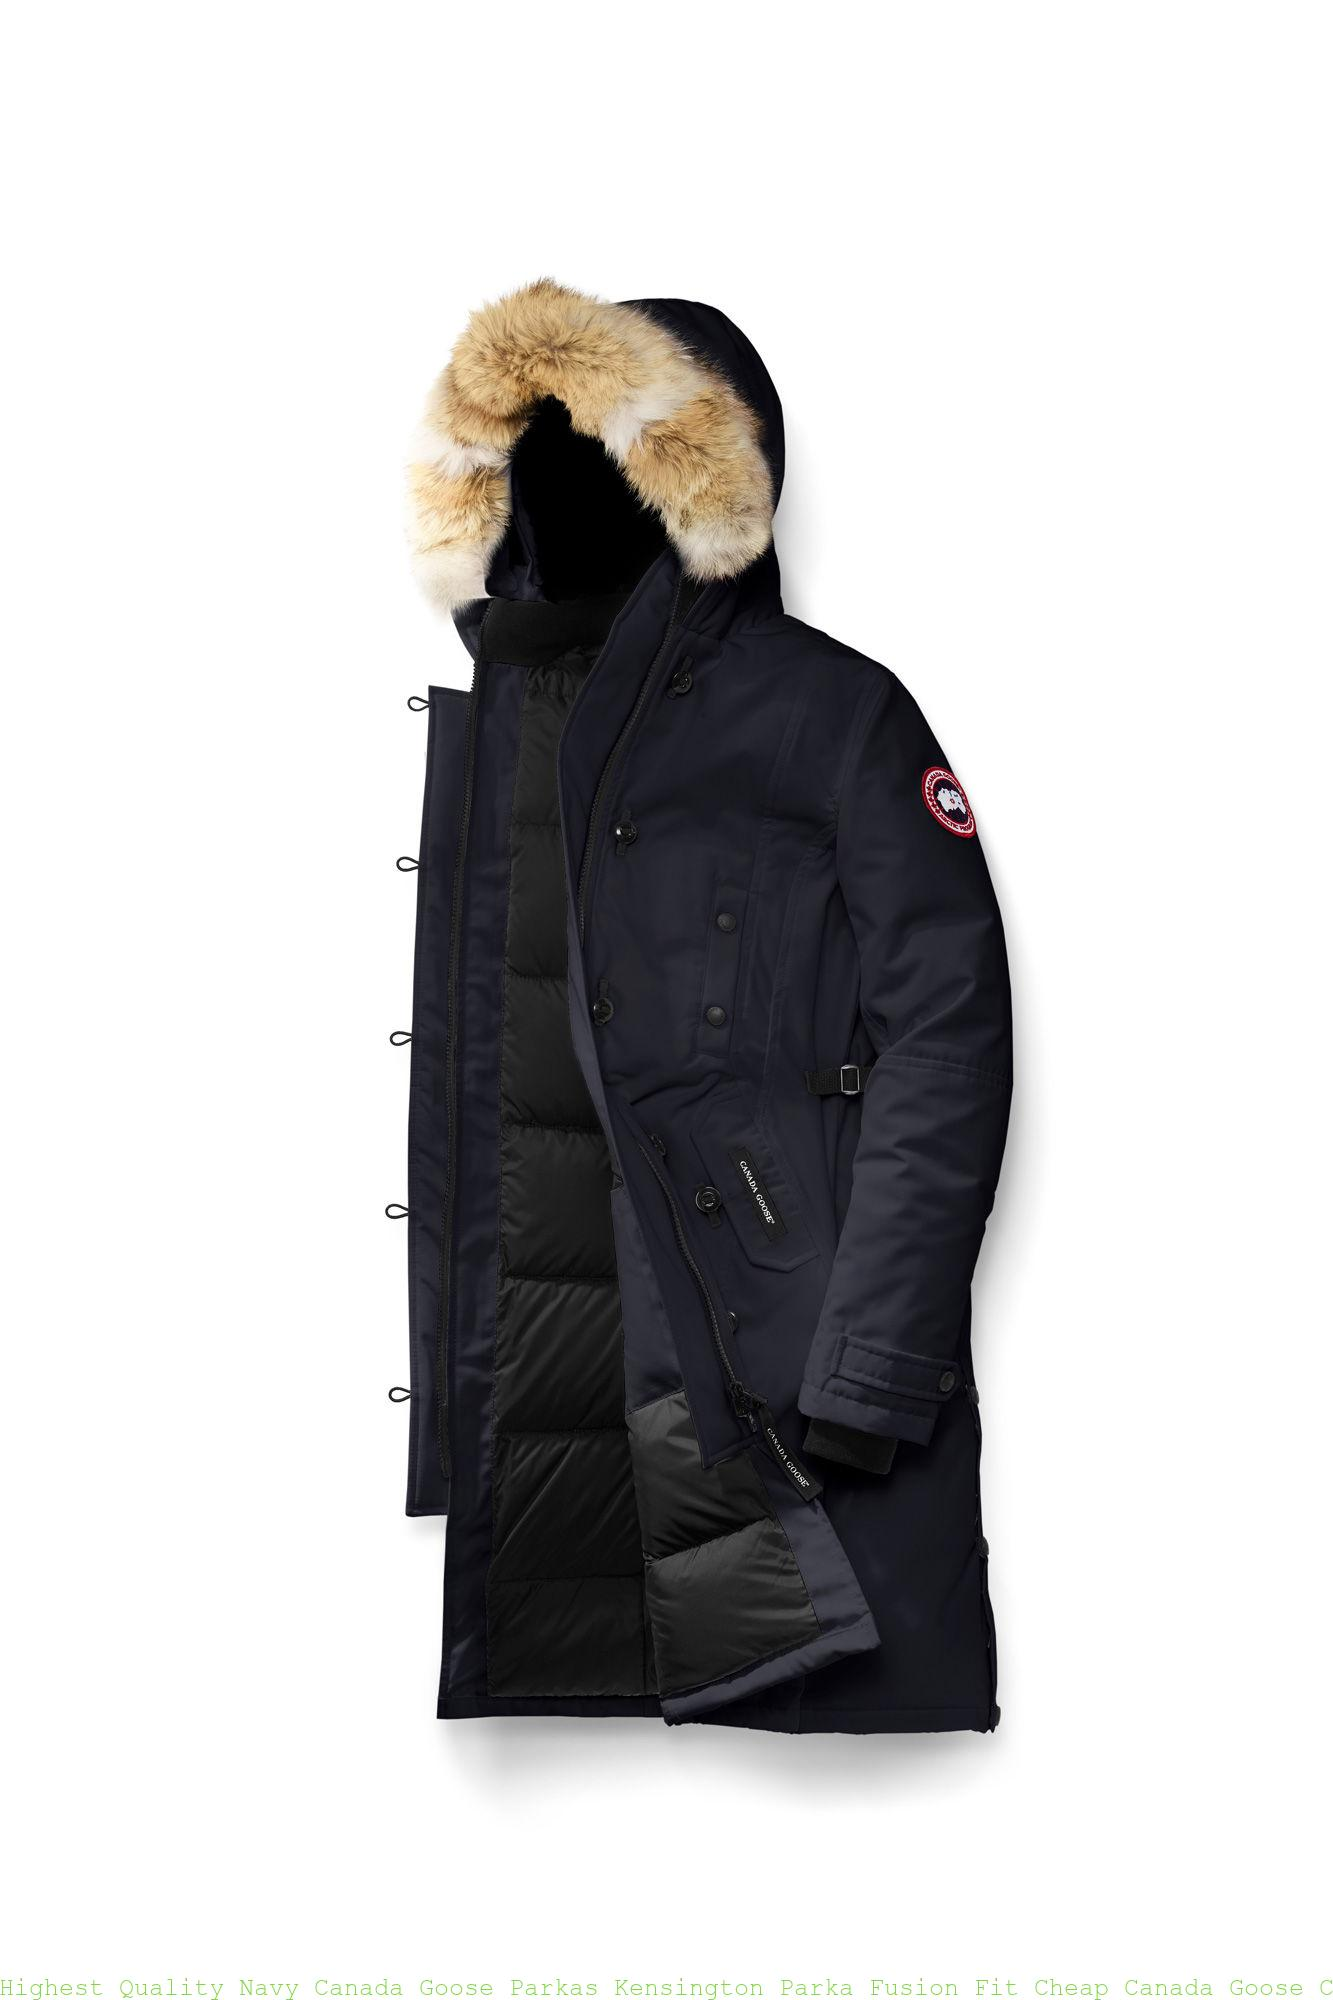 1a7ee8a20d5 Highest Quality Navy Canada Goose Parkas Kensington Parka Fusion Fit Cheap Canada  Goose China 2506LA